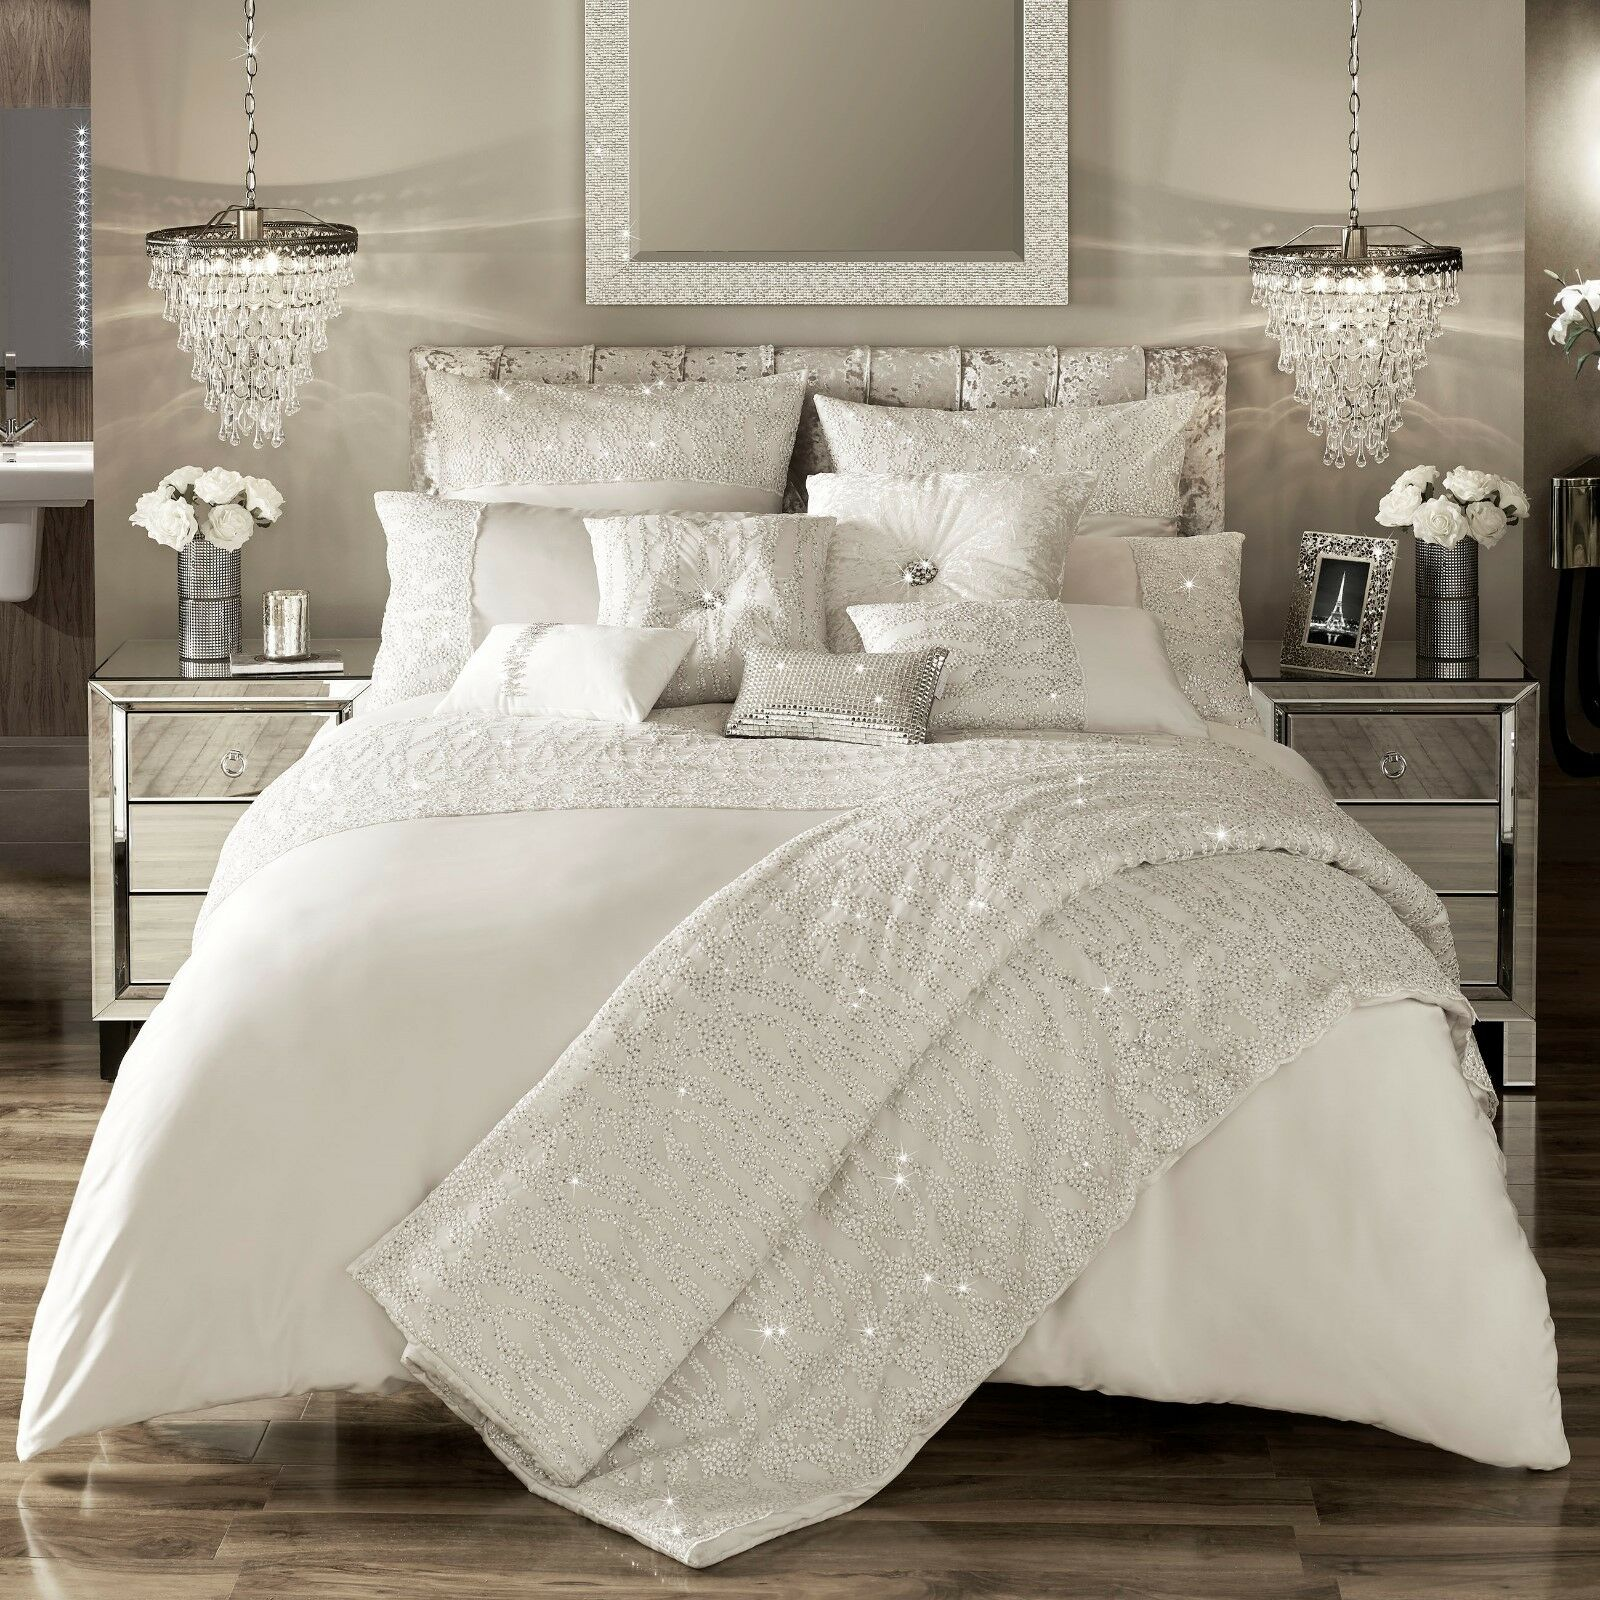 Kylie Minogue Bedding DARCEY Oyster   Ivory Duvet   Quilt Cover,Cushion or Throw